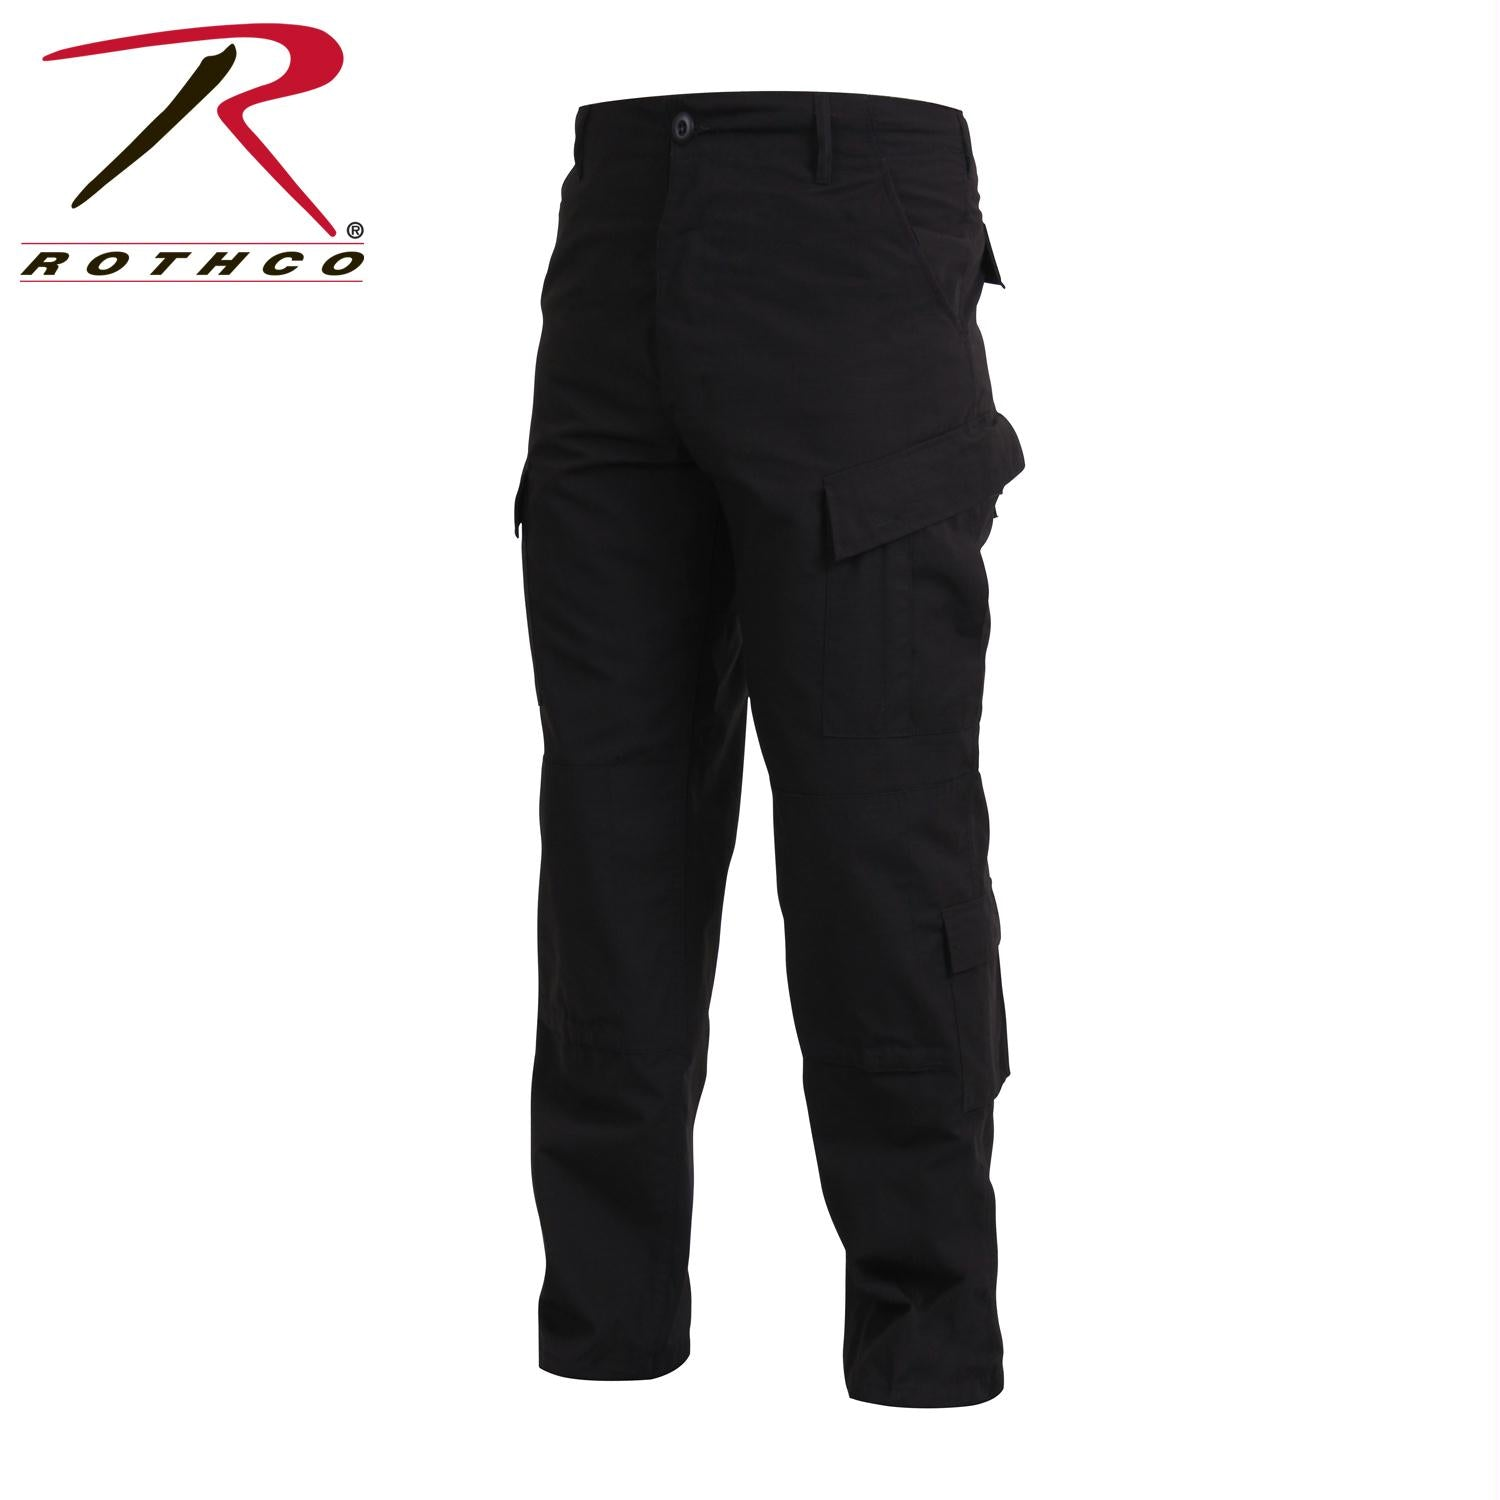 Tactical ACU Pants Rip-Stop Army Combat Uniform Fatigues - Black / S